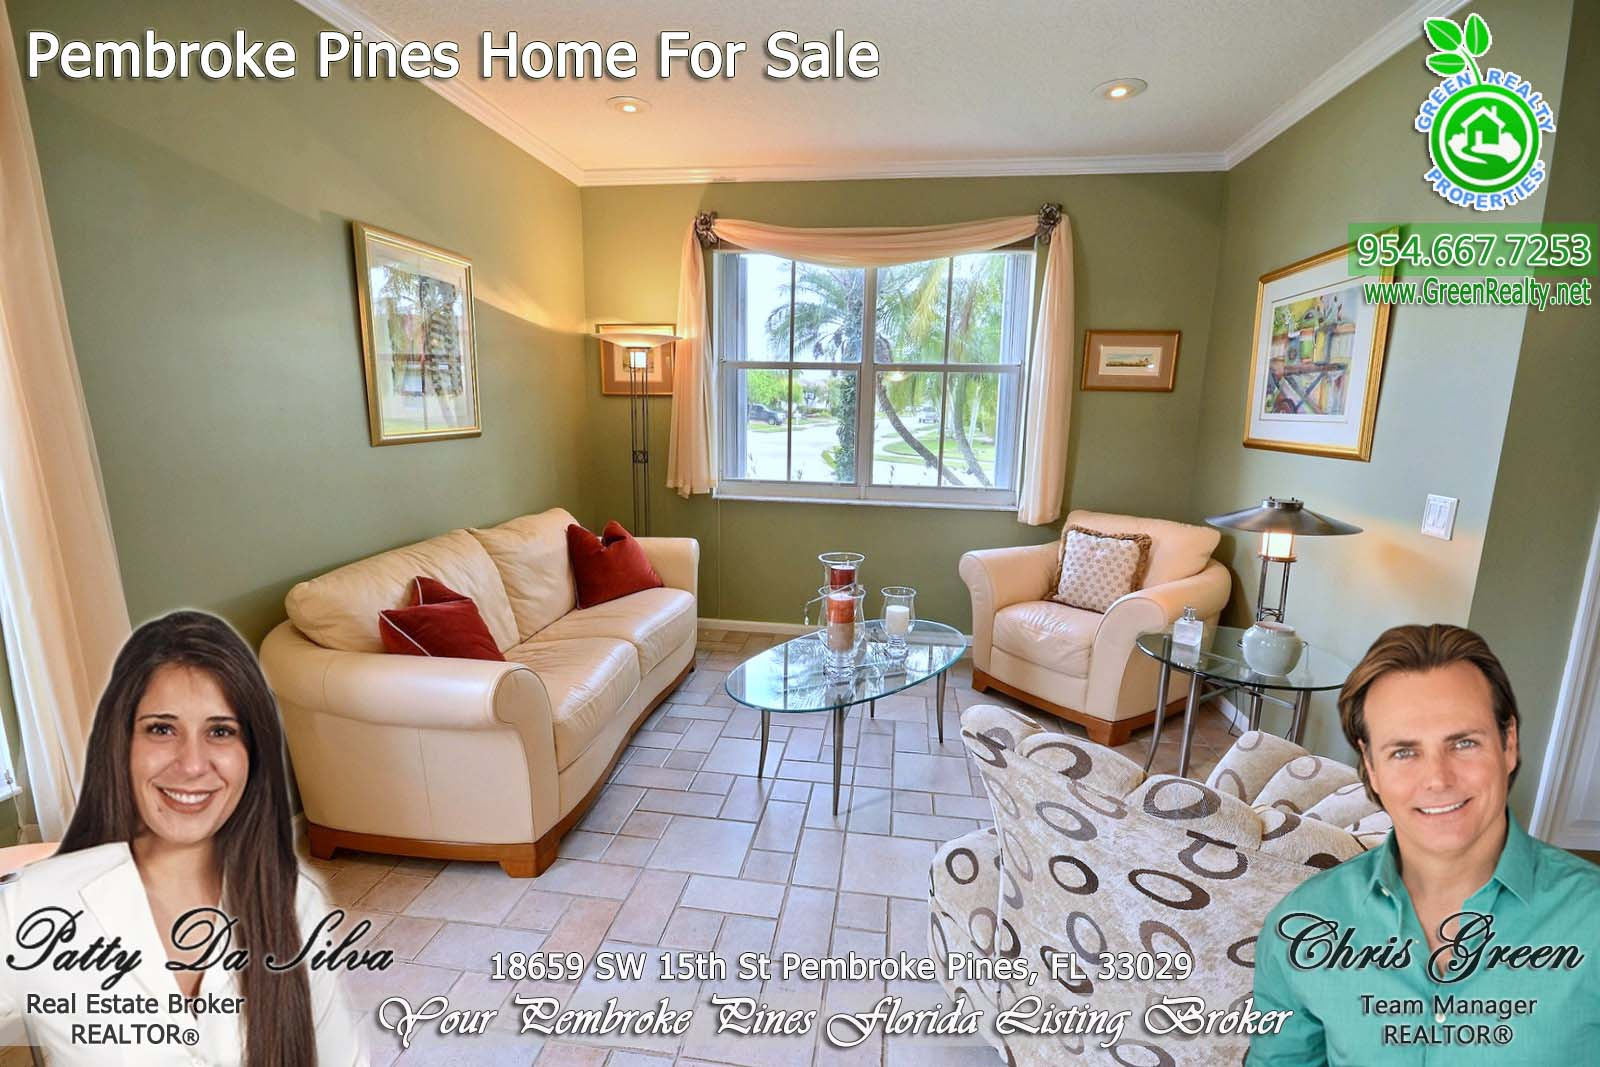 7 Homes For Sale in Pembroke Pines (5)